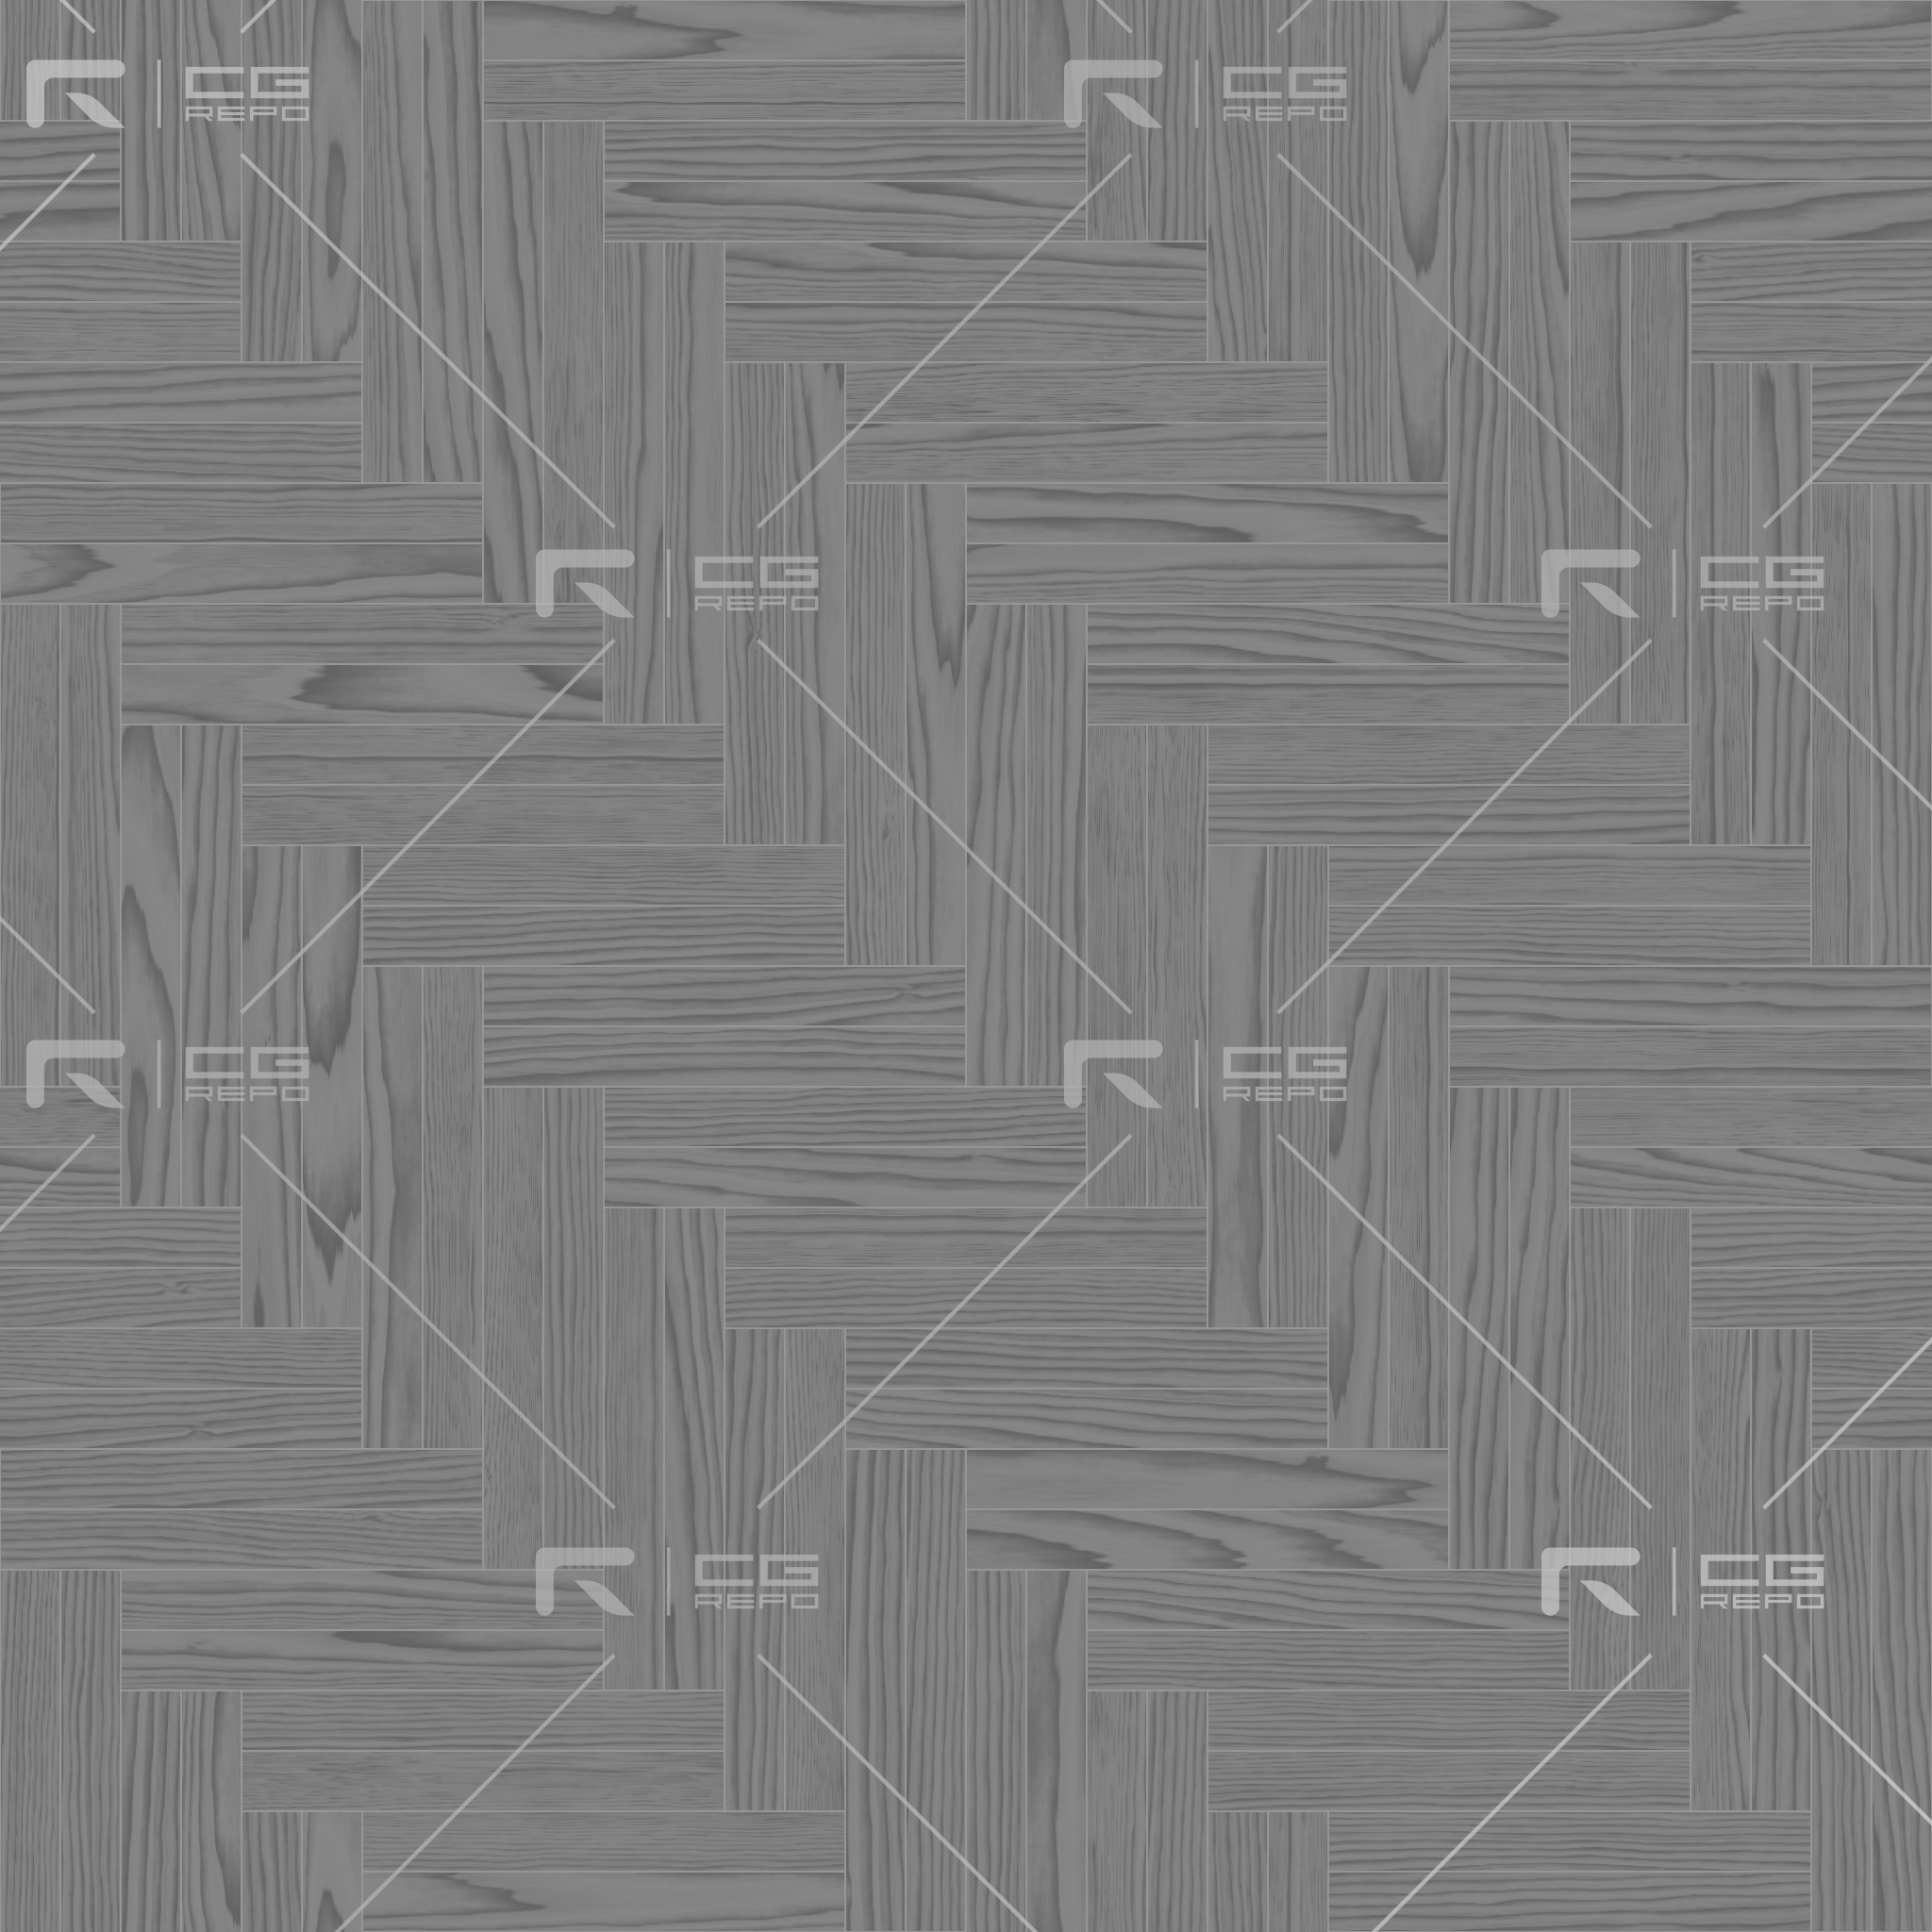 Walnut European Dark Double Herringbone Roughness Texture